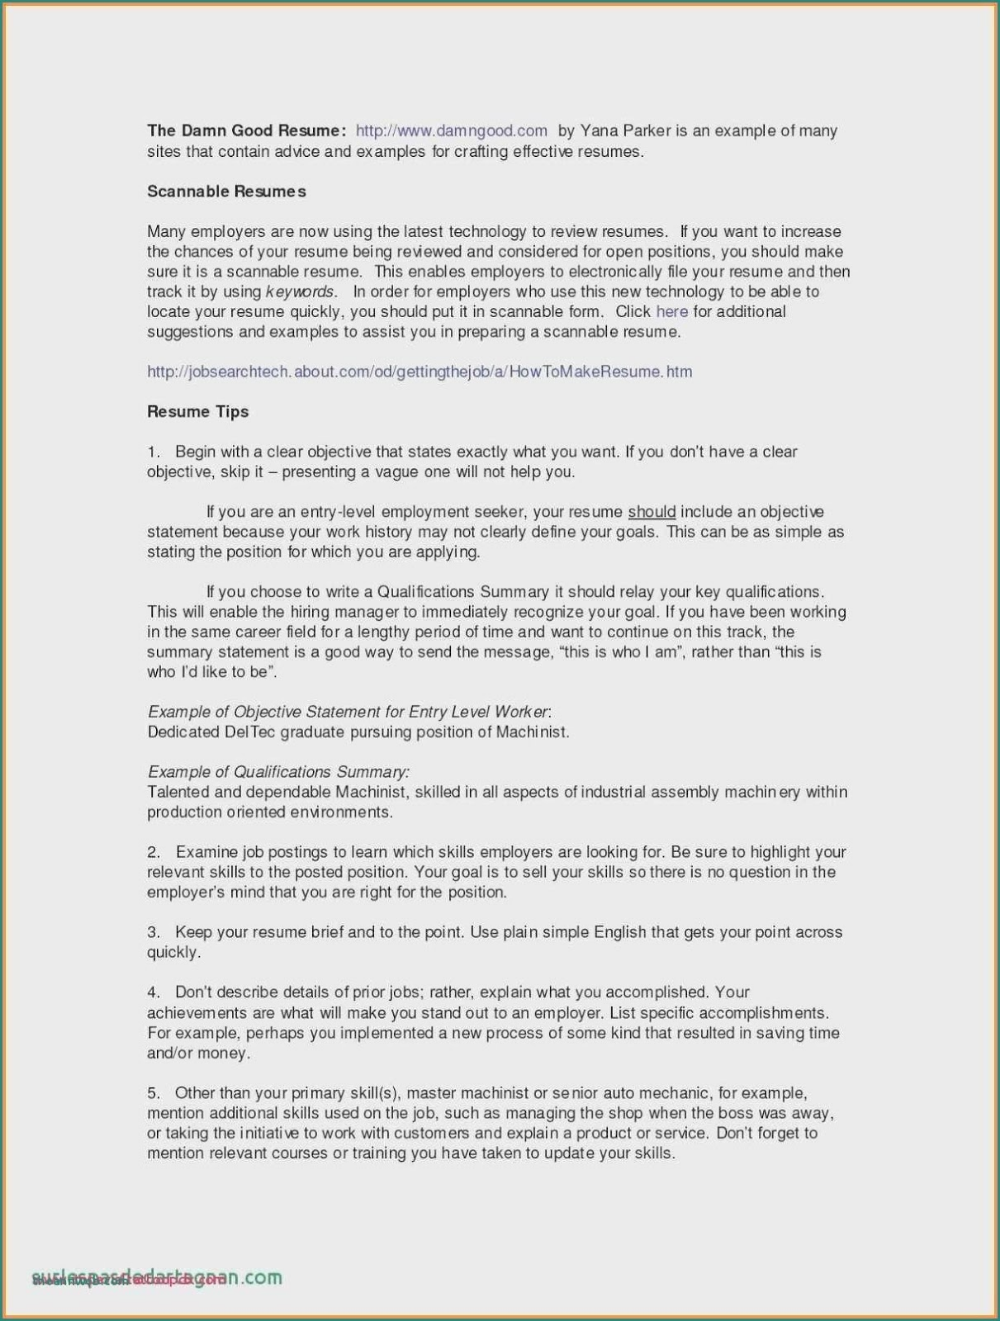 cosmetologist resume example, cosmetologist resume examples ...